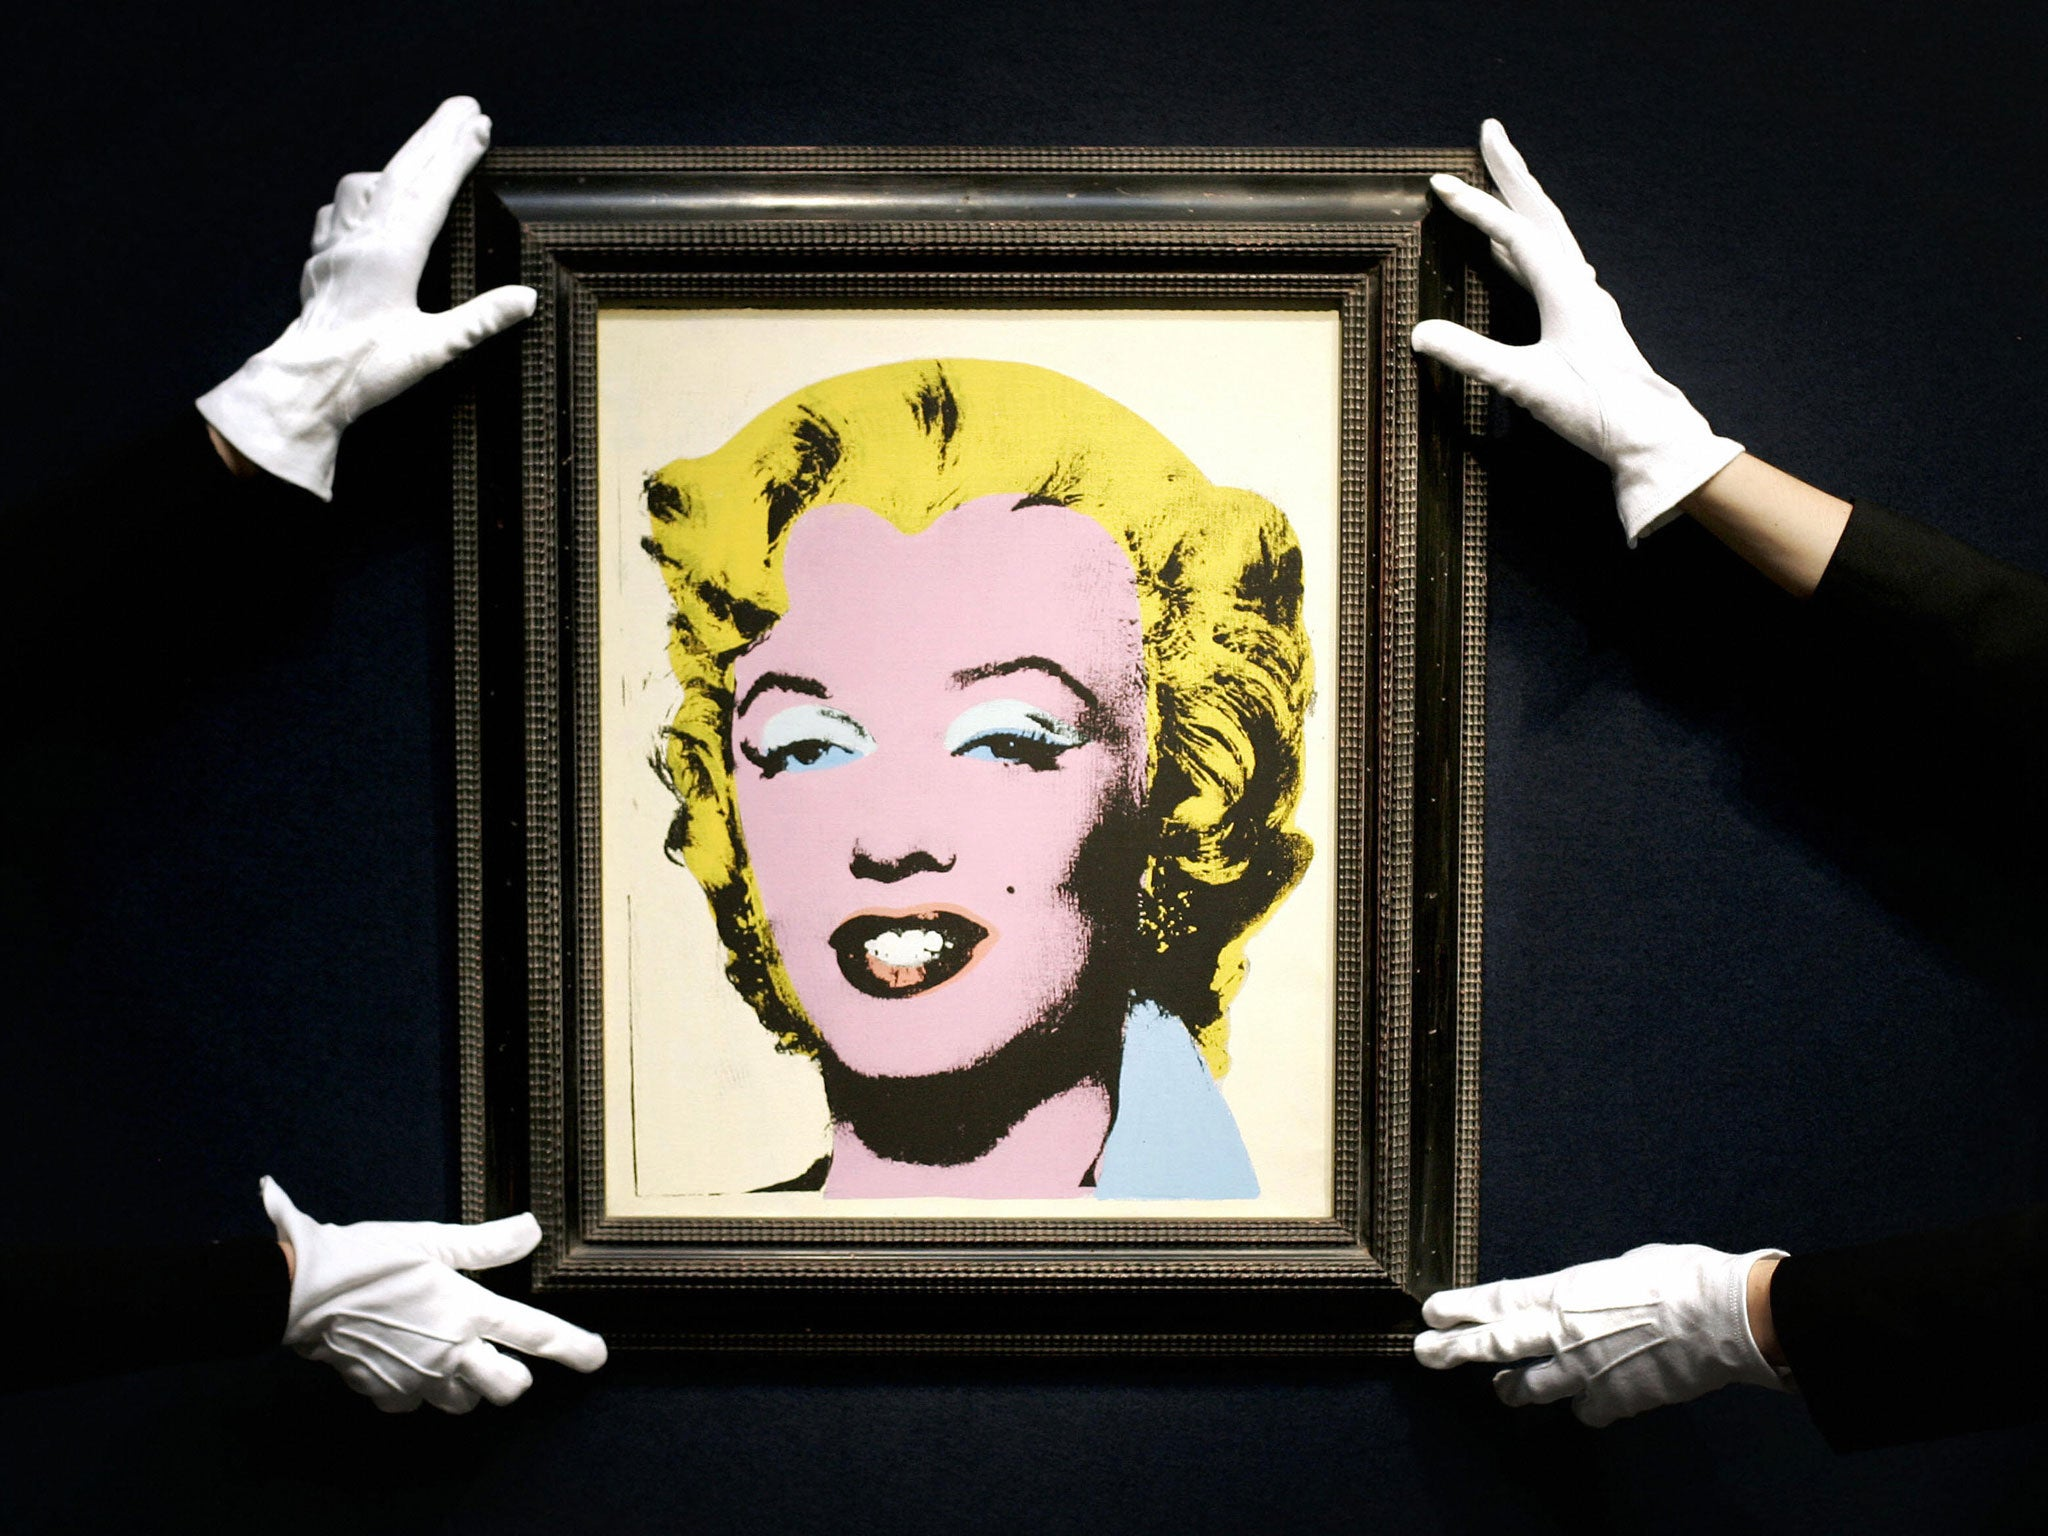 Andy Warhol auction: 'White Marilyn' and 'Race Riot' sell ...